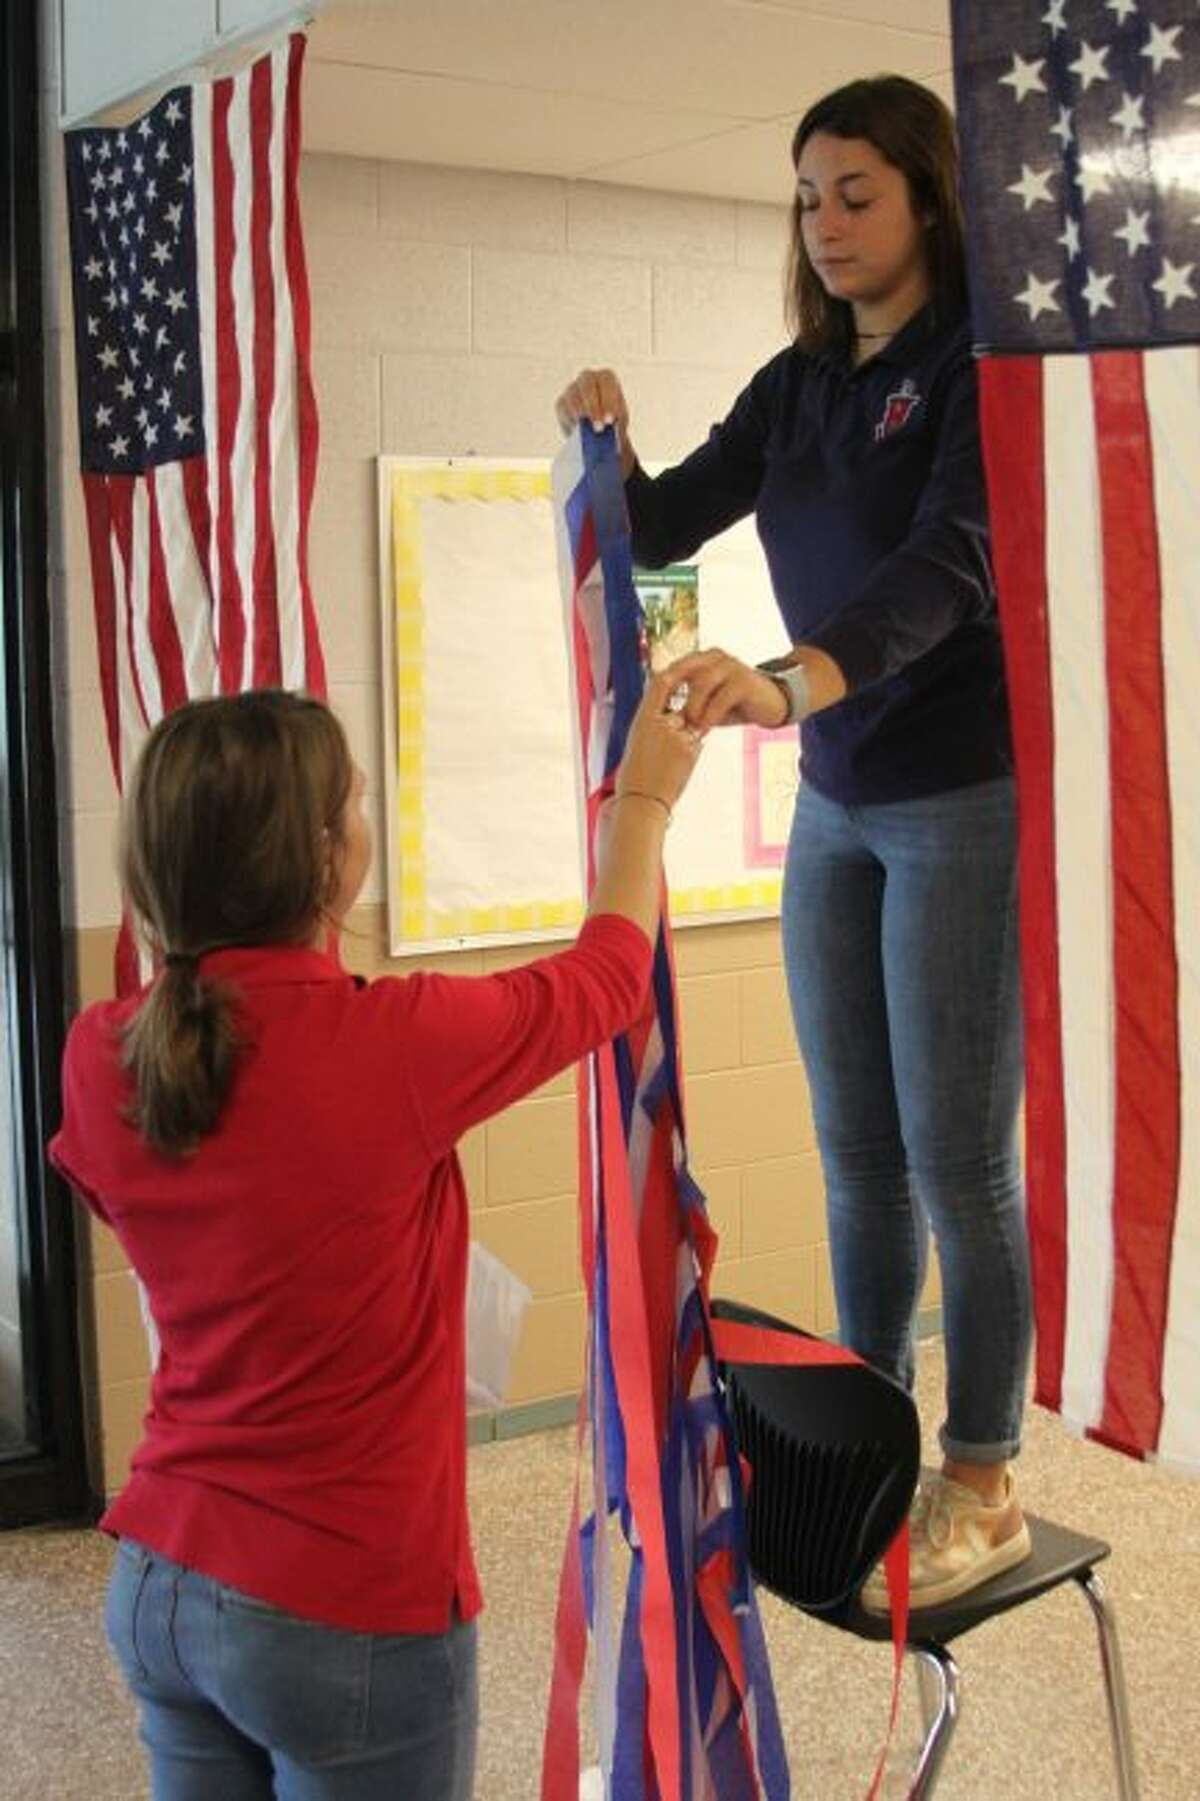 Manistee Catholic Central students were busy on Friday decorating the hallways in preparation for this week's homecoming activities. All week long the students will be taking part in fun activities to prepare with Friday's game against the Onekama Portagers.